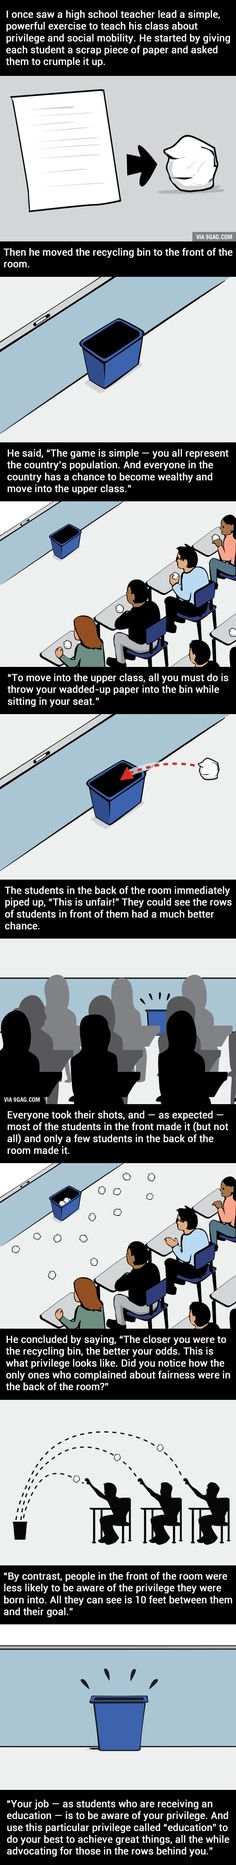 Jessica Benjamin- This Teacher Taught His Class A Powerful Lesson About Privilege. I think this is a great lesson for older grades but maybe you could use it in middle schools as well. I think its a powerful lesson that would really impact students. Tricky Games, Faith In Humanity Restored, 9gag Funny, Future Classroom, School Counseling, Social Work, Social Class, Social Issues, In Kindergarten